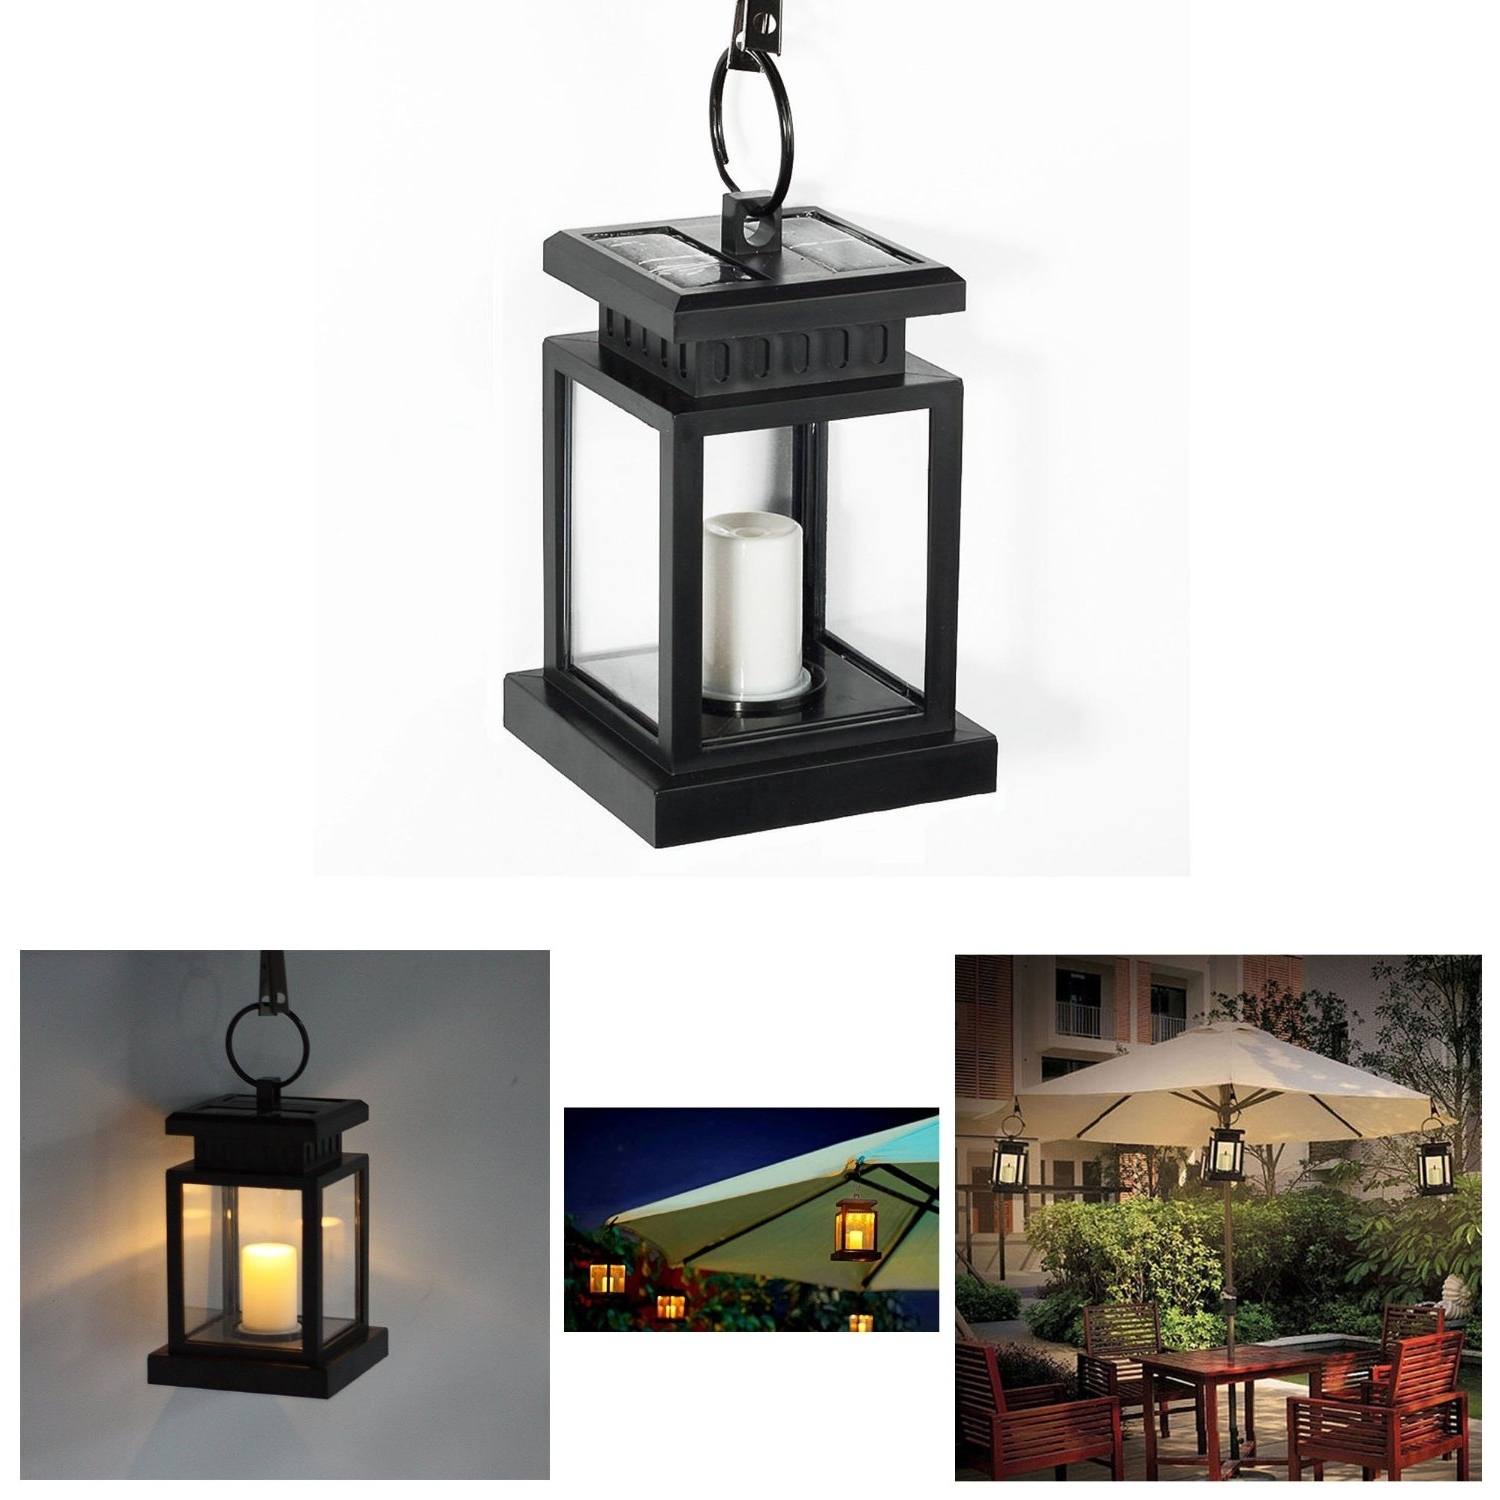 Well Known Solar Powered Hanging Umbrella Lantern Candle Led Light With Clamp With Solar Powered Outdoor Hanging Lanterns (View 3 of 20)